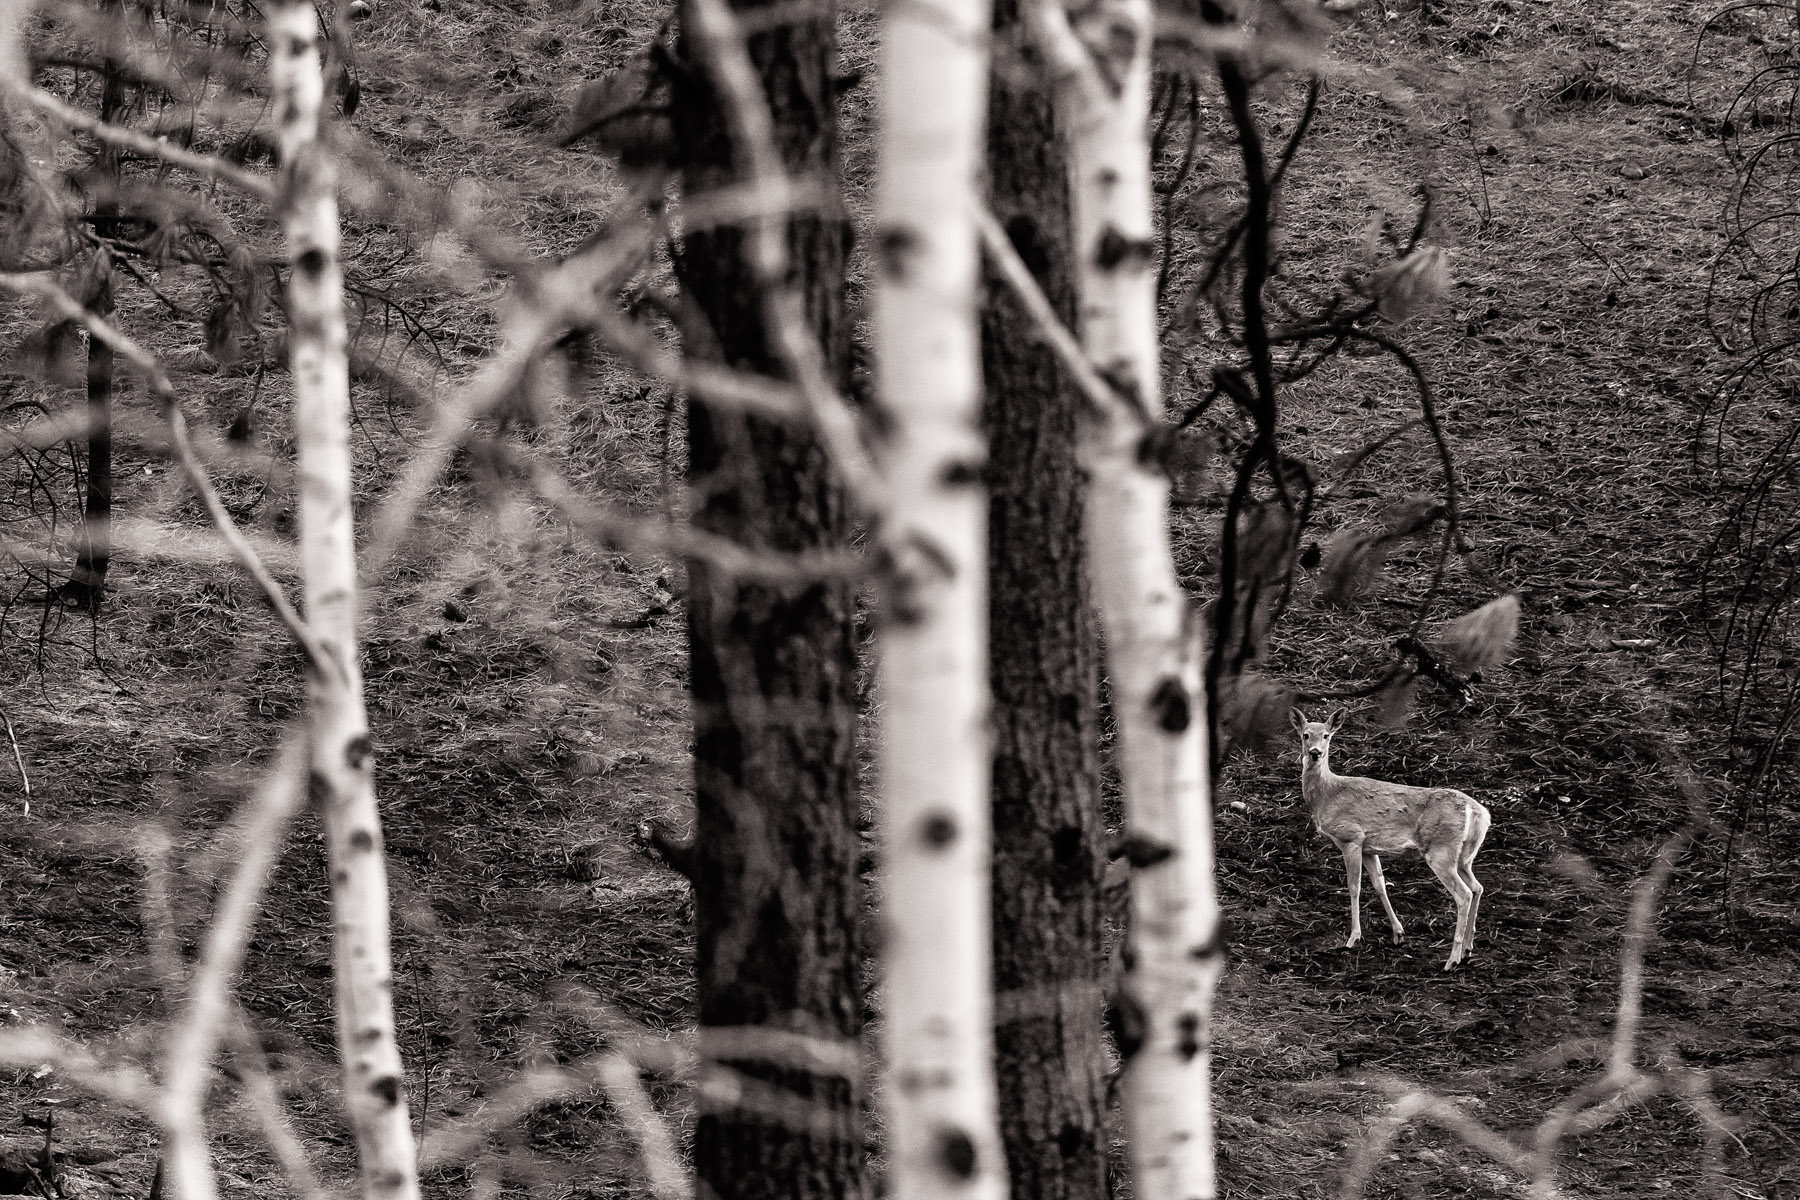 Conservation: A deer in a recently burned forest, Methow Valley, Washington